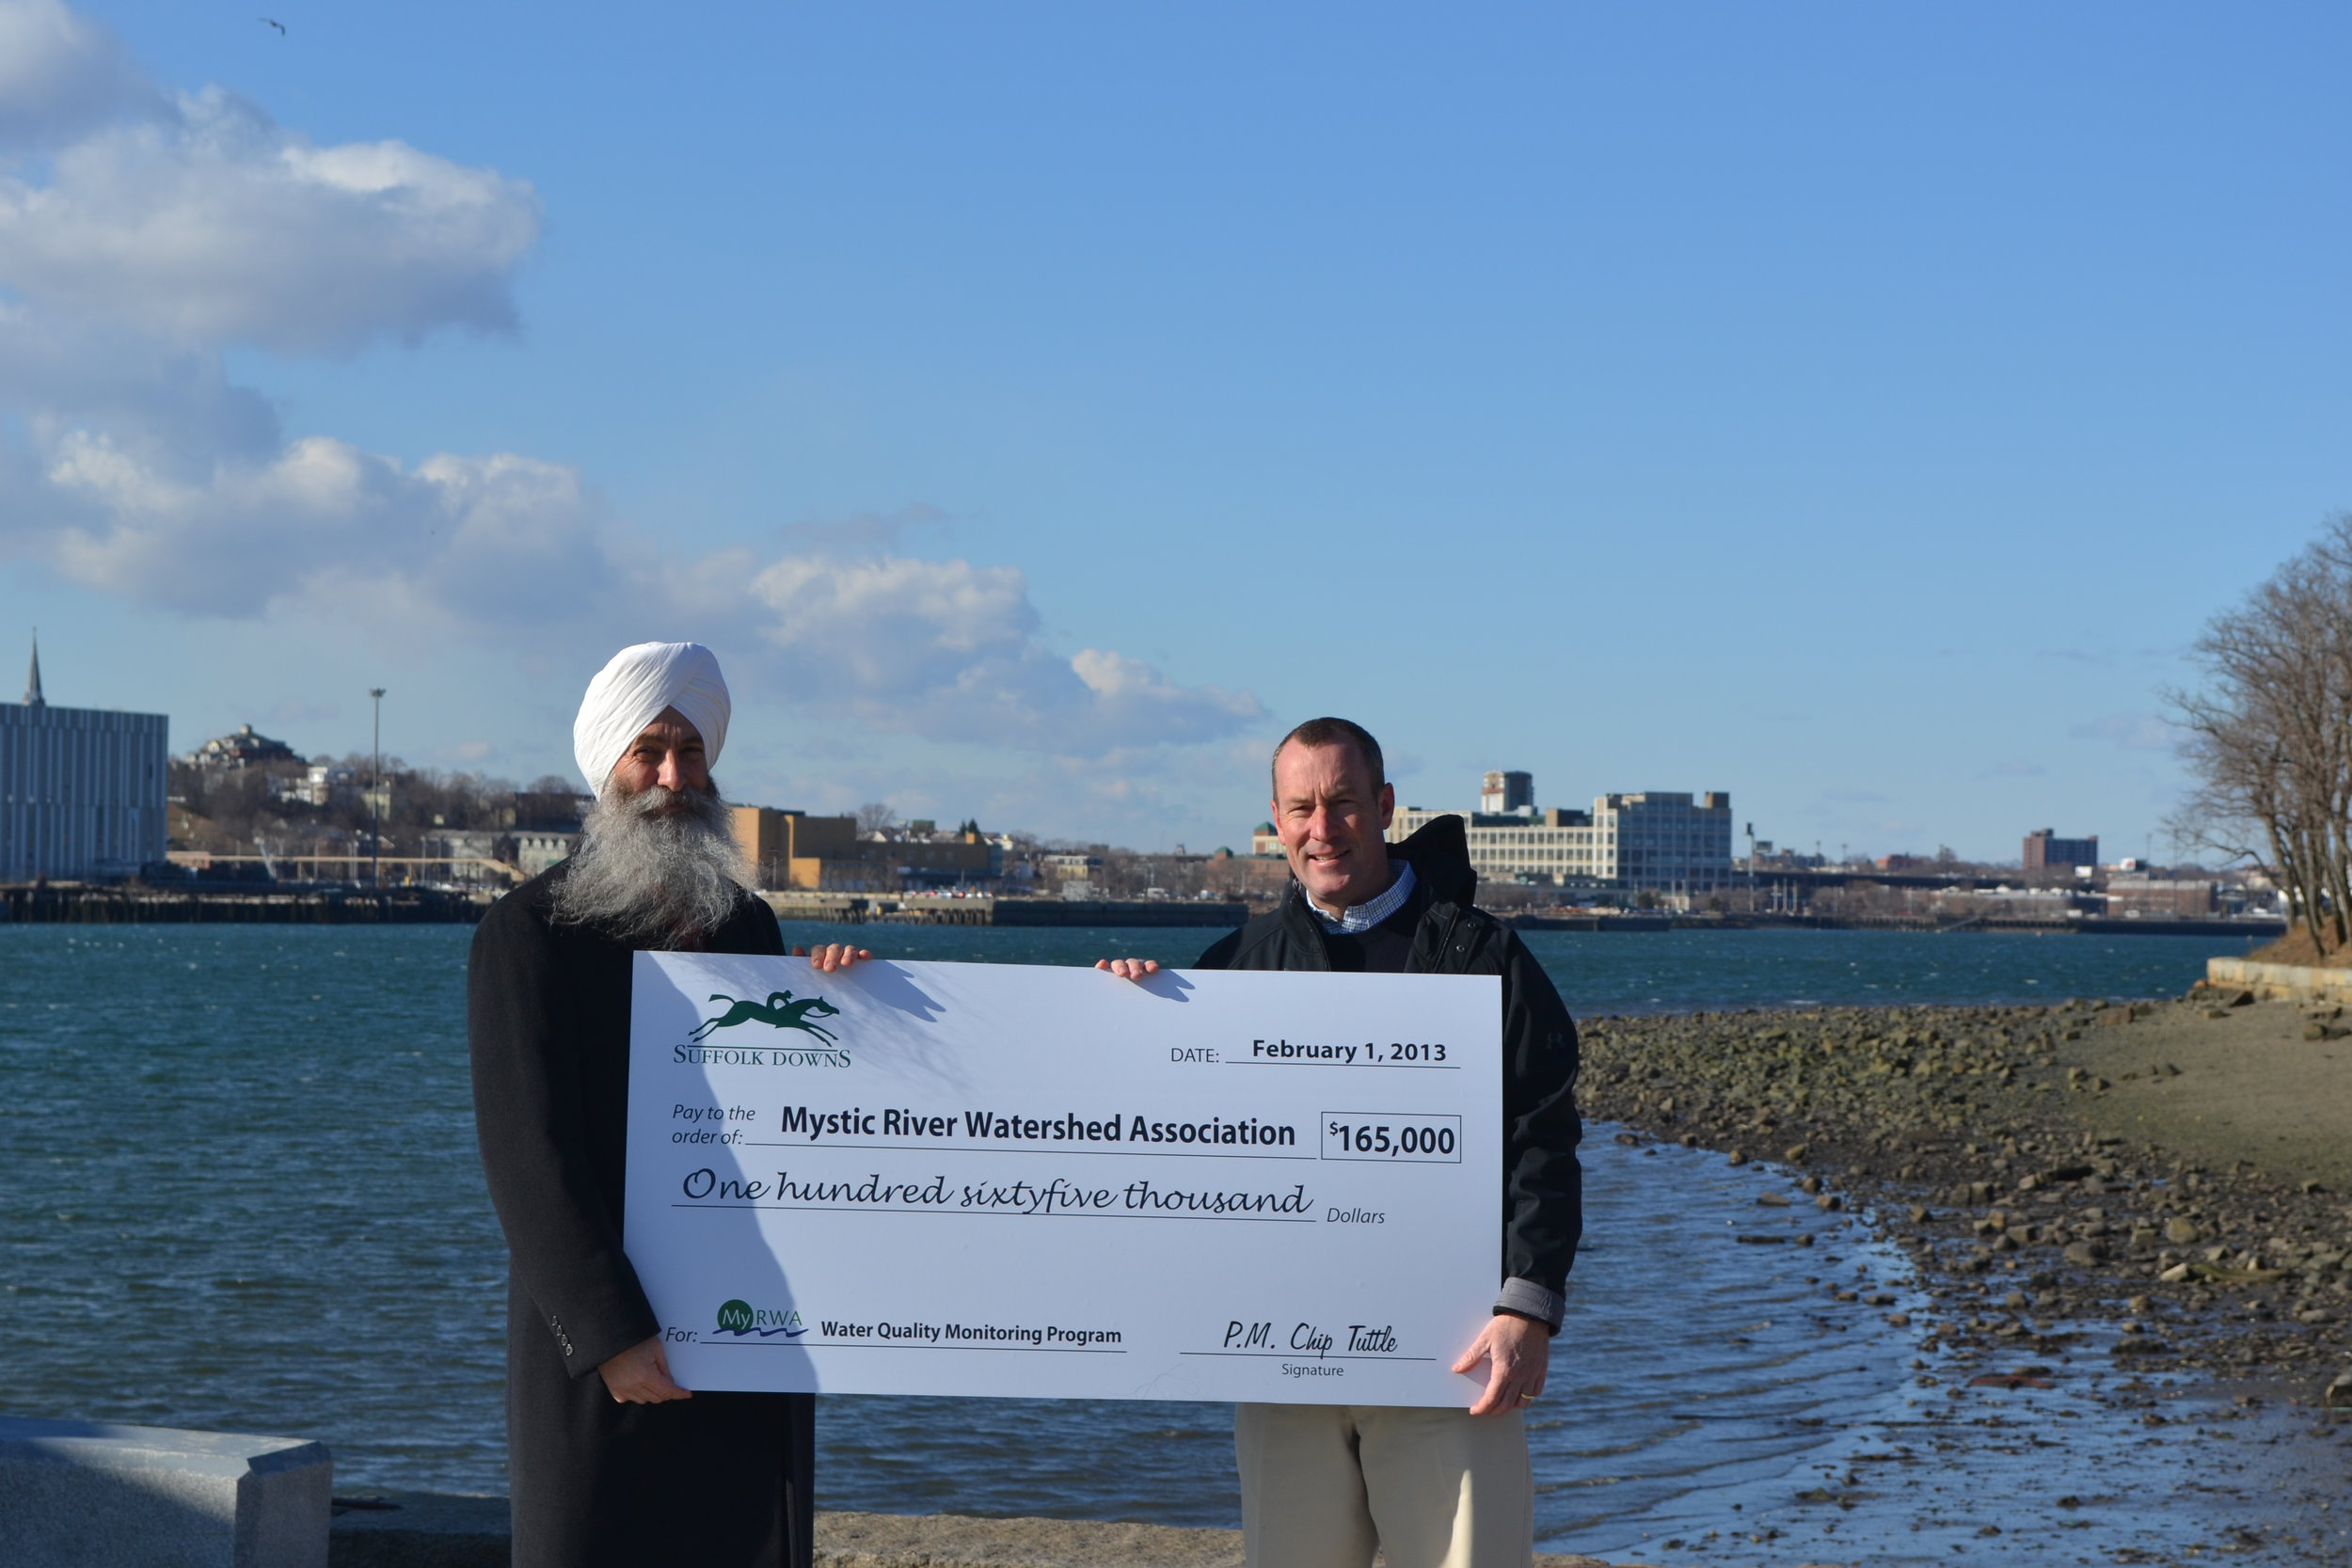 EkOngKar Singh Khalsa, Executive Director - Mystic River Watershed Association and Chip Tuttle, Chief Operating Officer - Suffolk Downs, celebrate Suffolk Downs' support of local water quality monitoring and improvement efforts. (Pictured above on the banks of the Mystic River at Mary O'Malley Park in Chelsea.